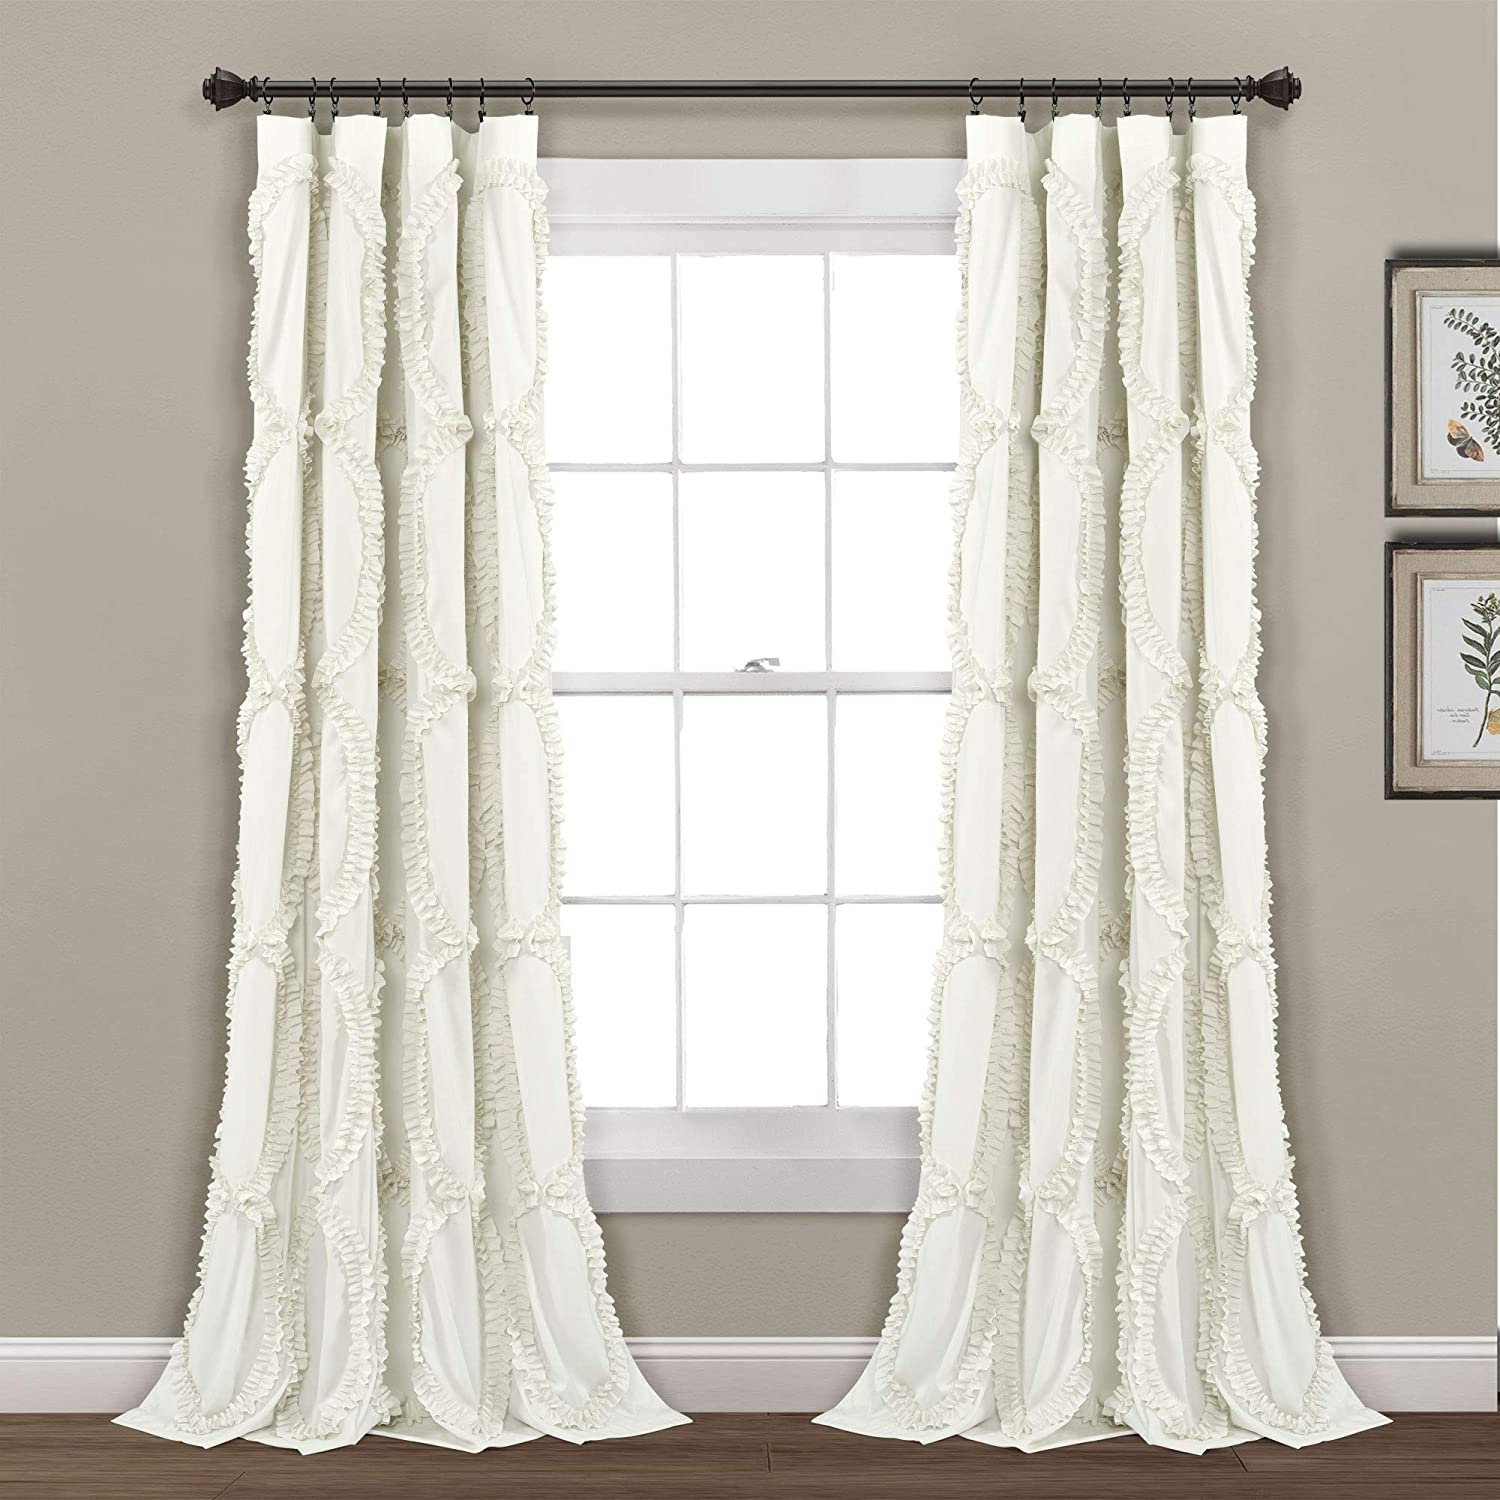 "Lush Decor Avon Window Curtain Ivory Panel for Living, Dining Room, Bedroom (Single), 84"" x 54"","